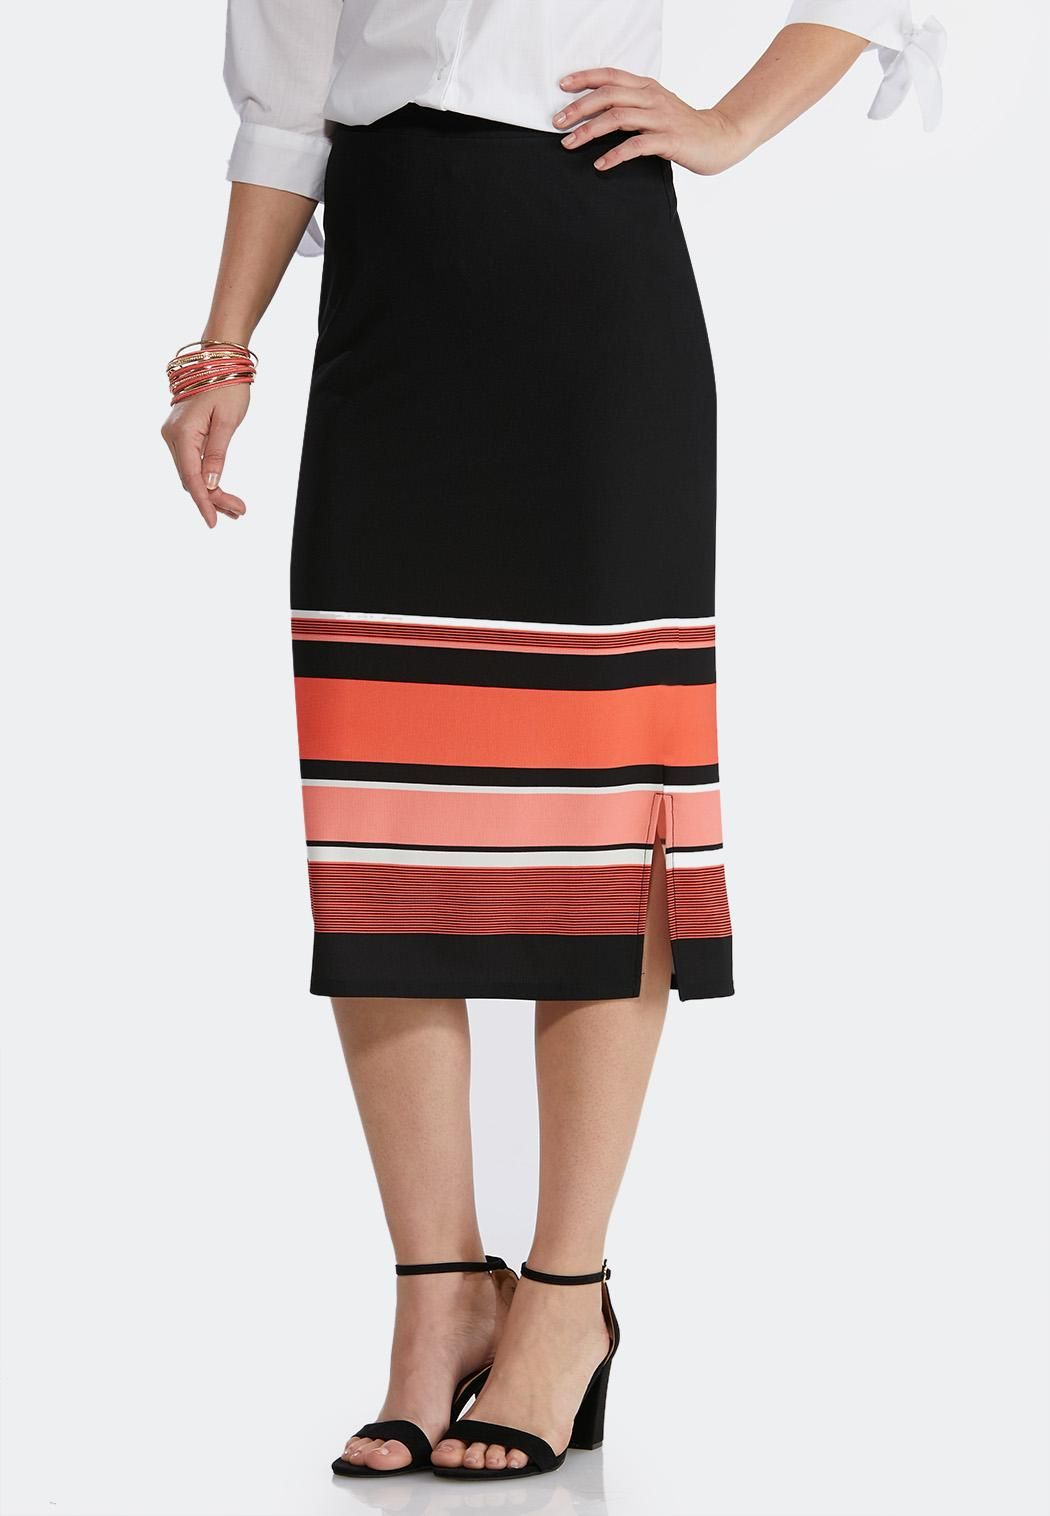 d9726fcf8 Textured Stripe Pencil Skirt Below The Knee Cato Fashions in 2019 ...